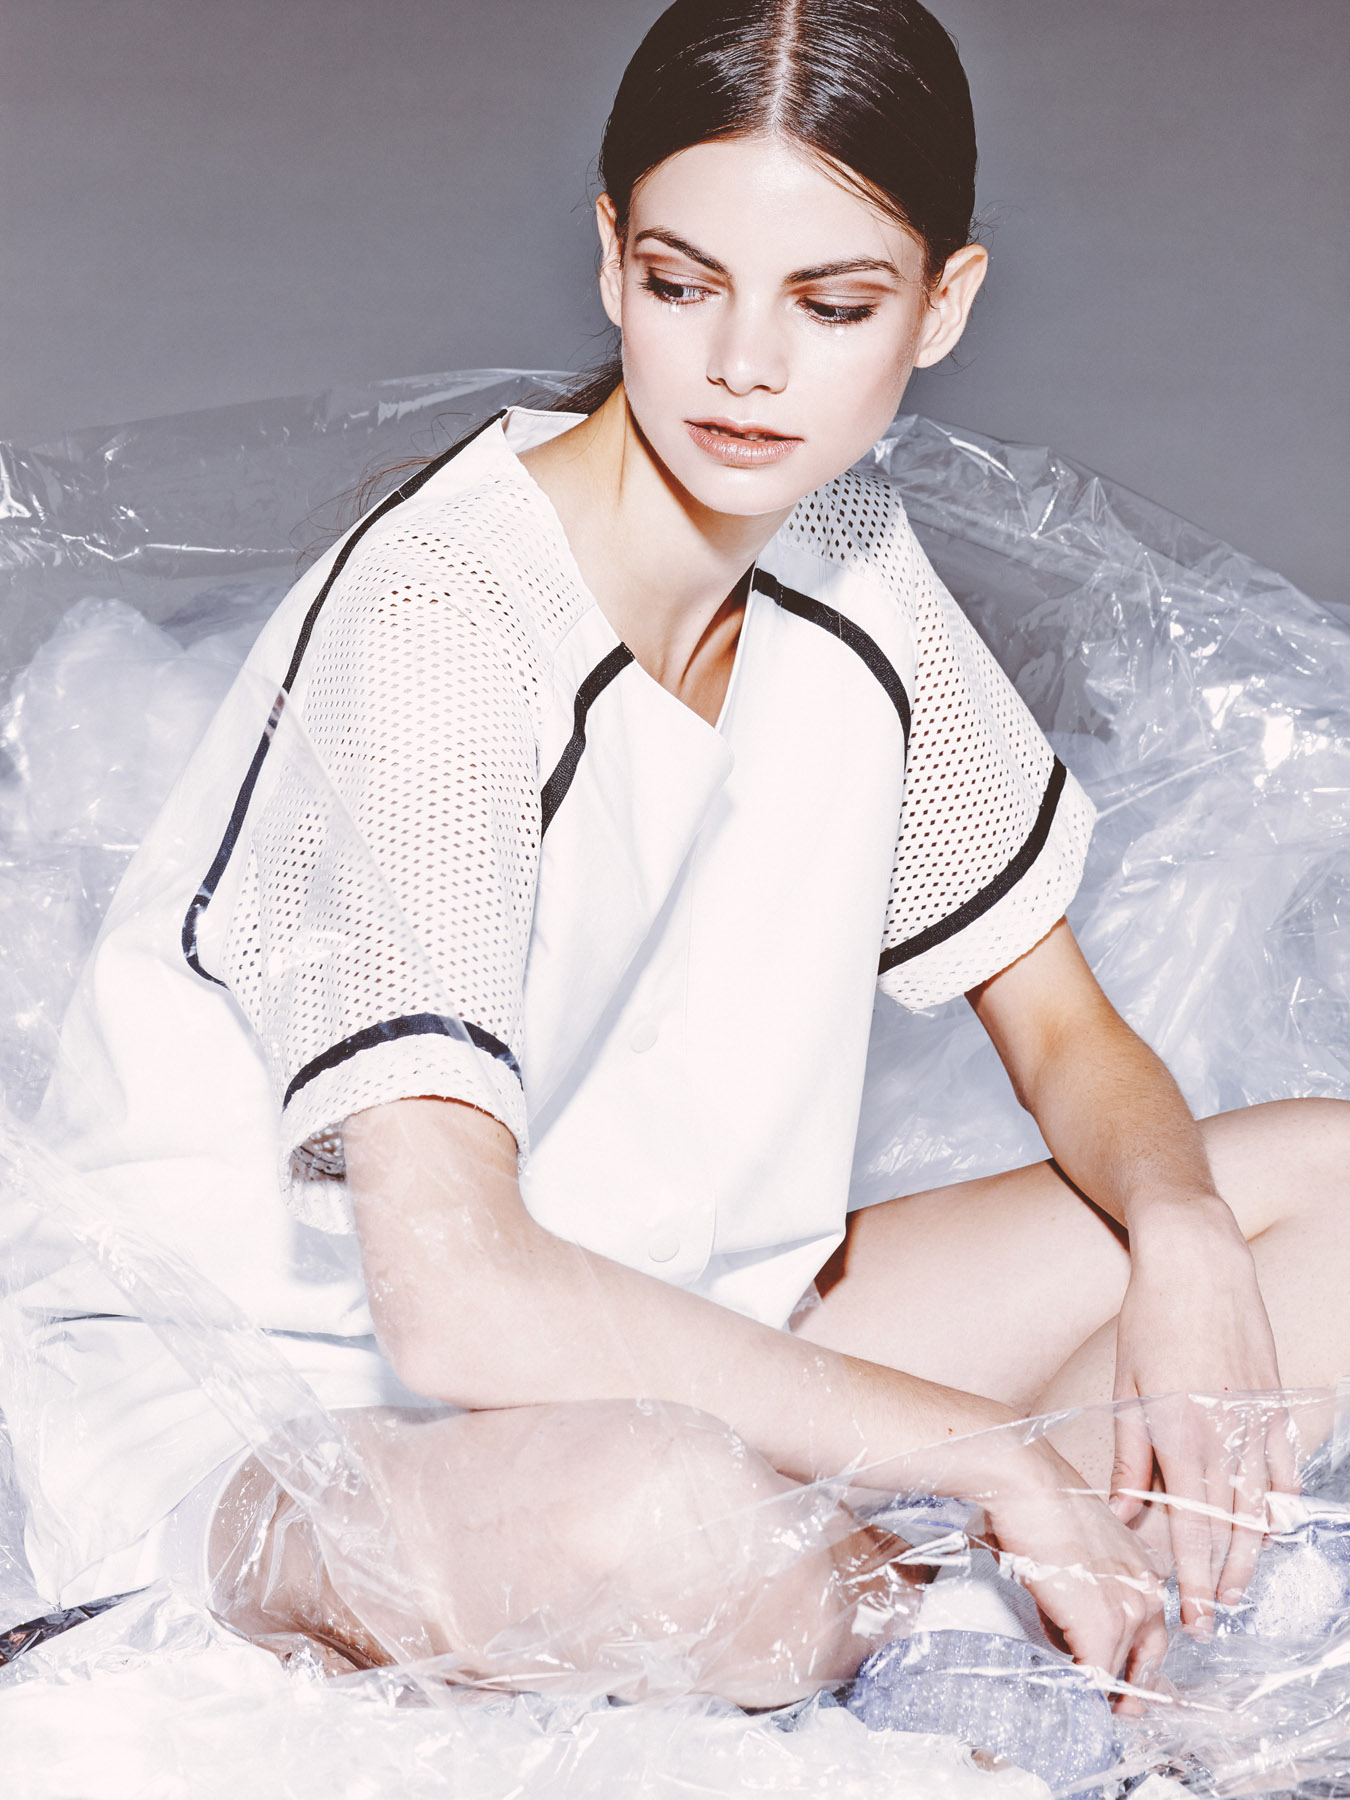 CRYSTAL CLEAR by Matt Lain for CHASSEUR MAGAZINE